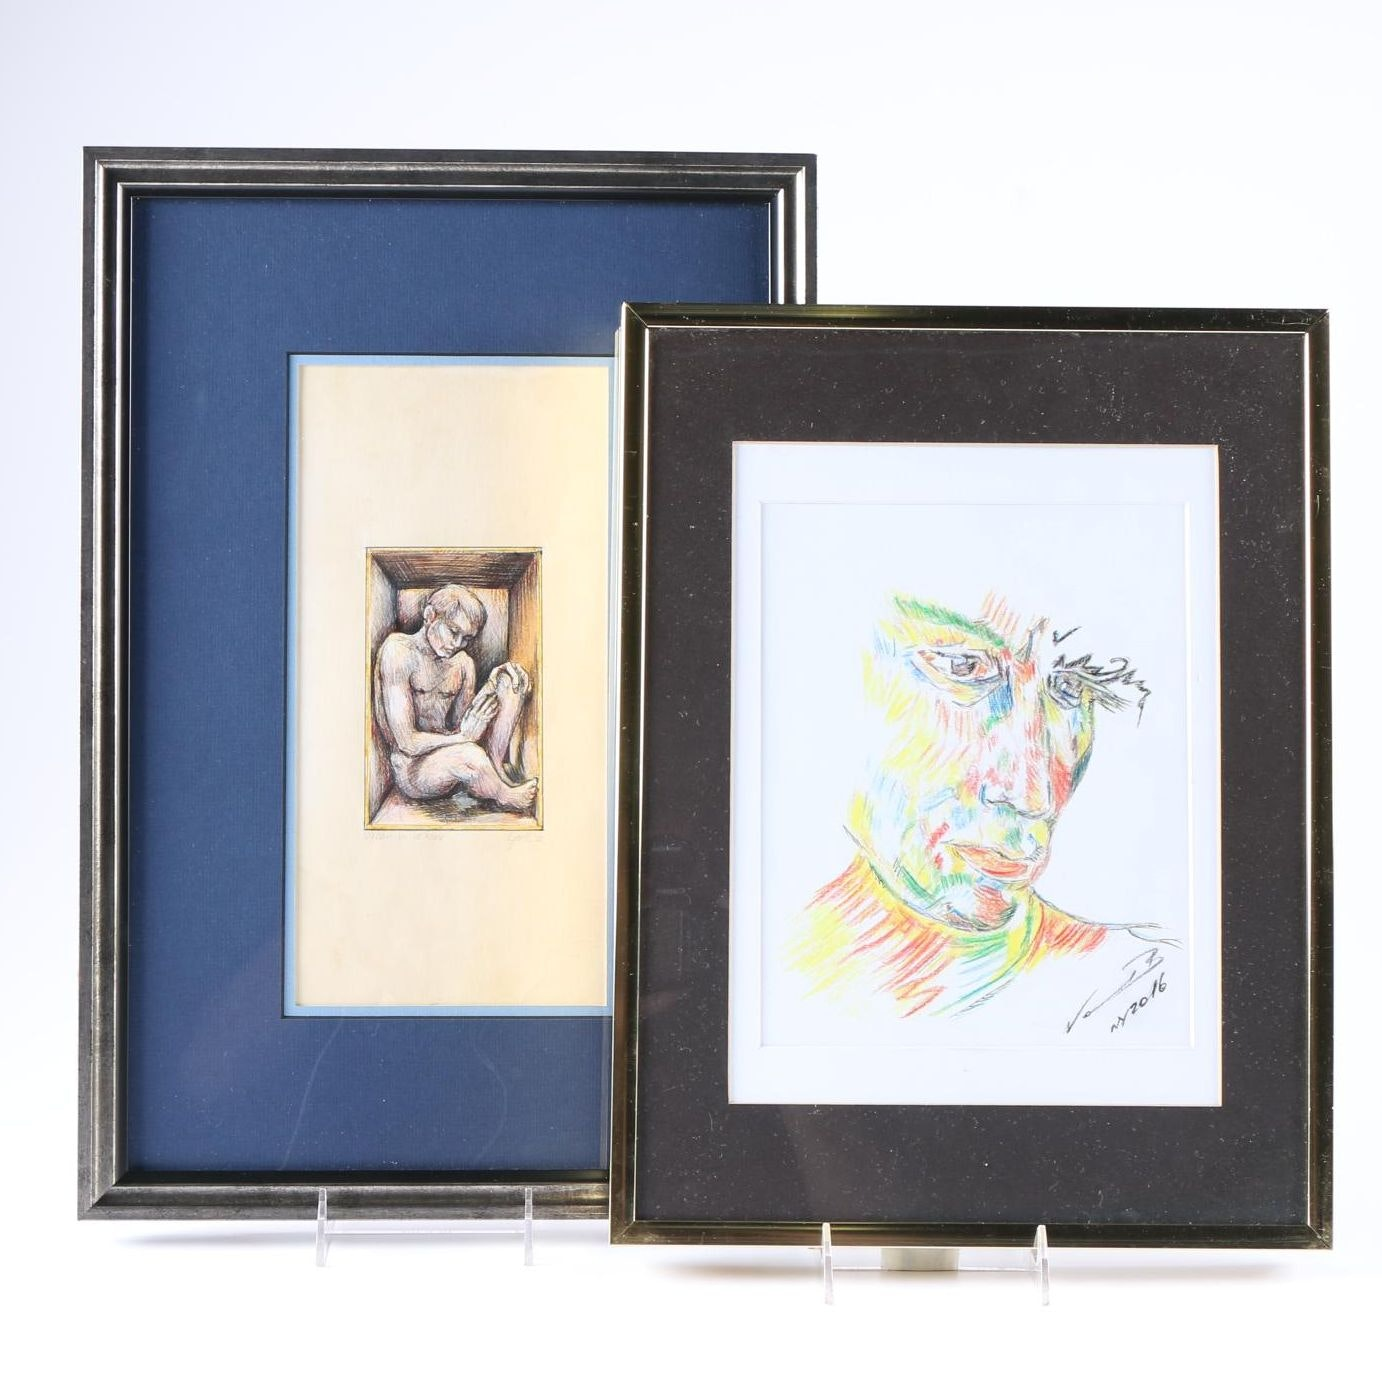 Framed Drawing and Print of Male Subjects